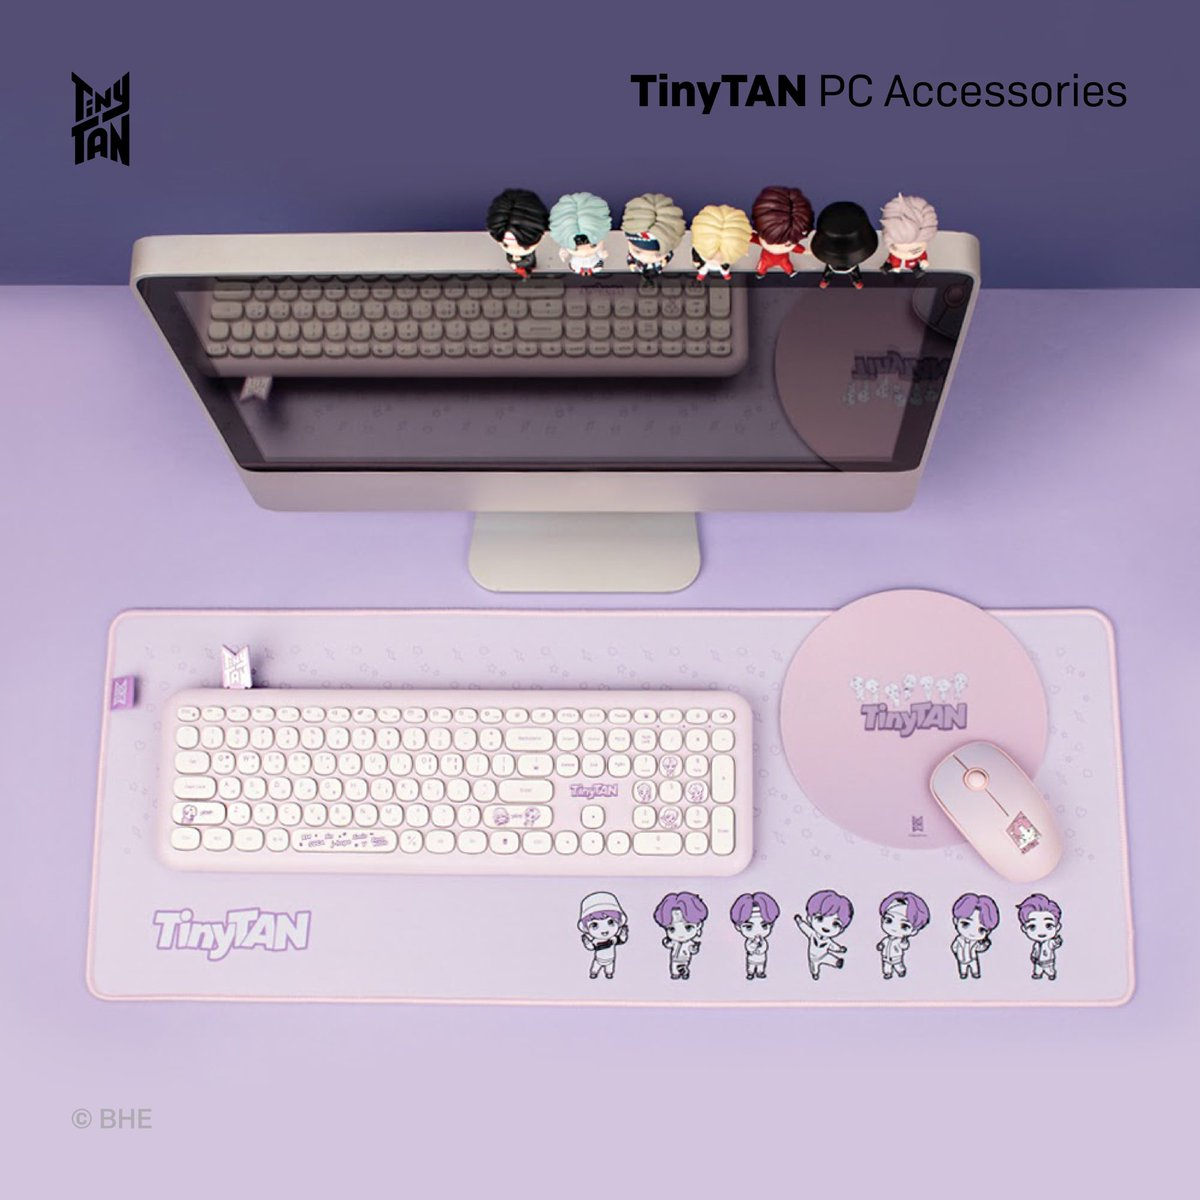 [February 2021] Newly Launched Licensed Products! TinyTAN @ROYCHE_OFFICIAL PC Accessories available in Japan and Korea